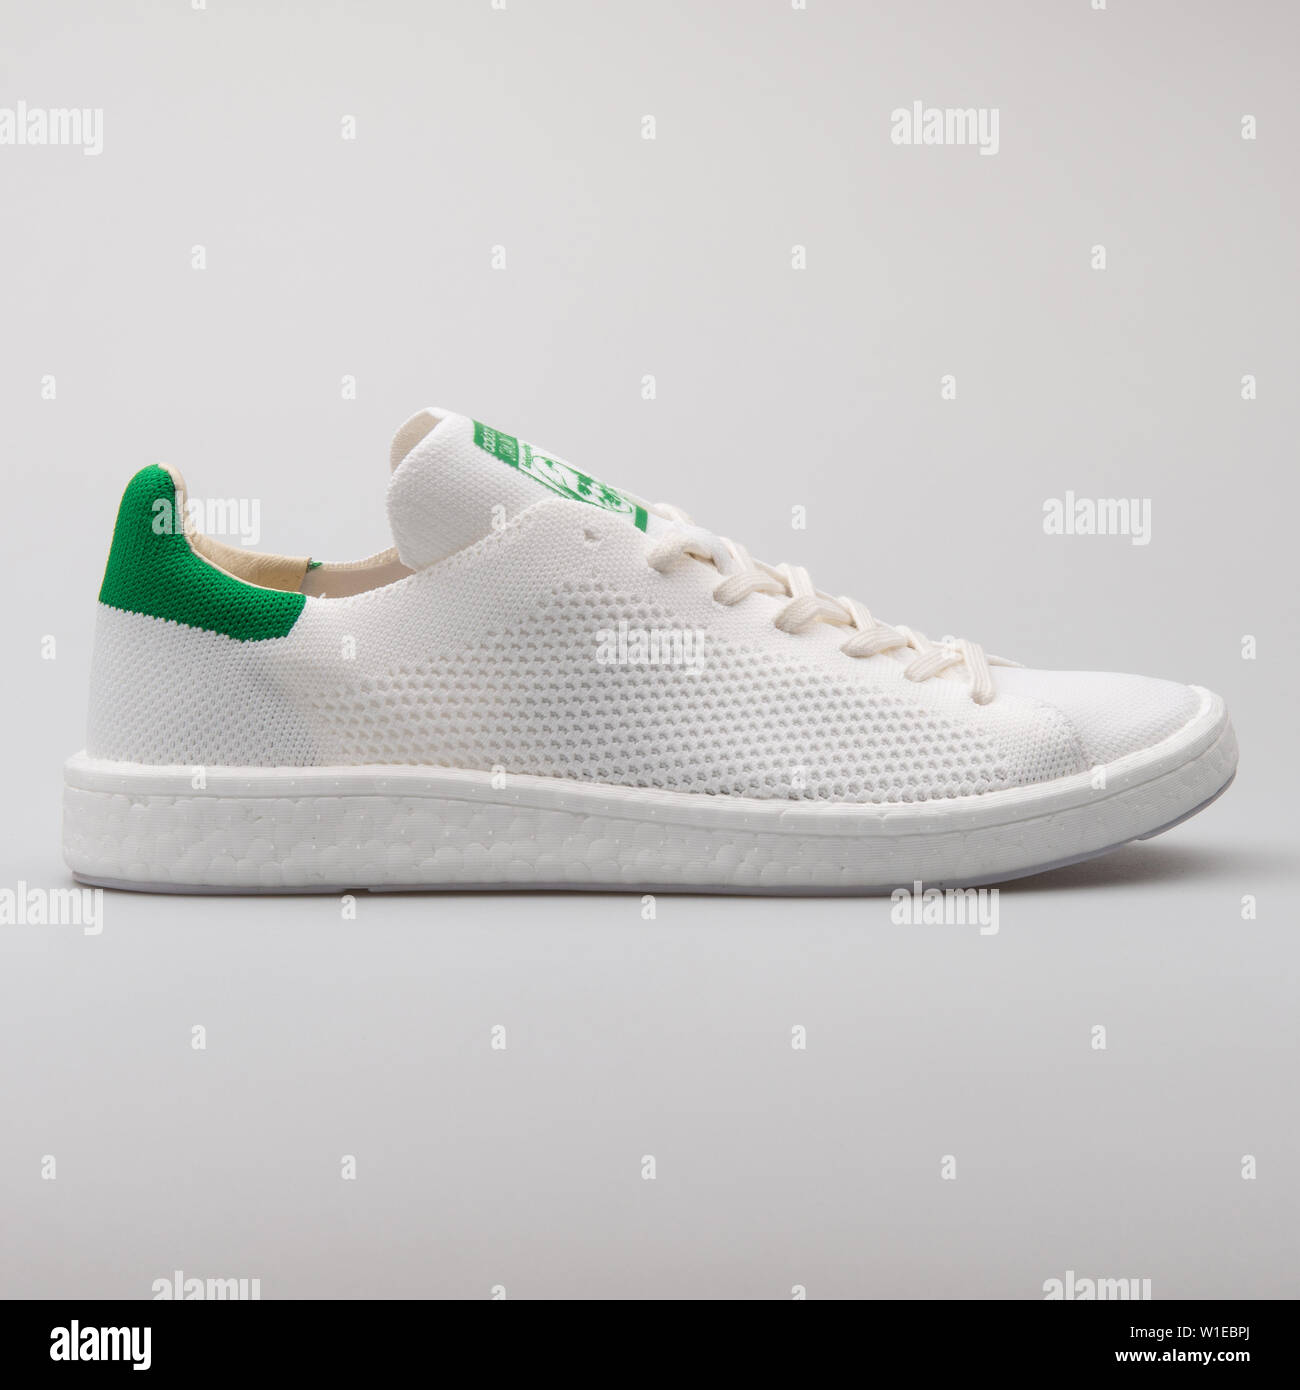 best sneakers e63d5 55d96 VIENNA, AUSTRIA - AUGUST 7, 2017: Adidas Stan Smith PK white ...